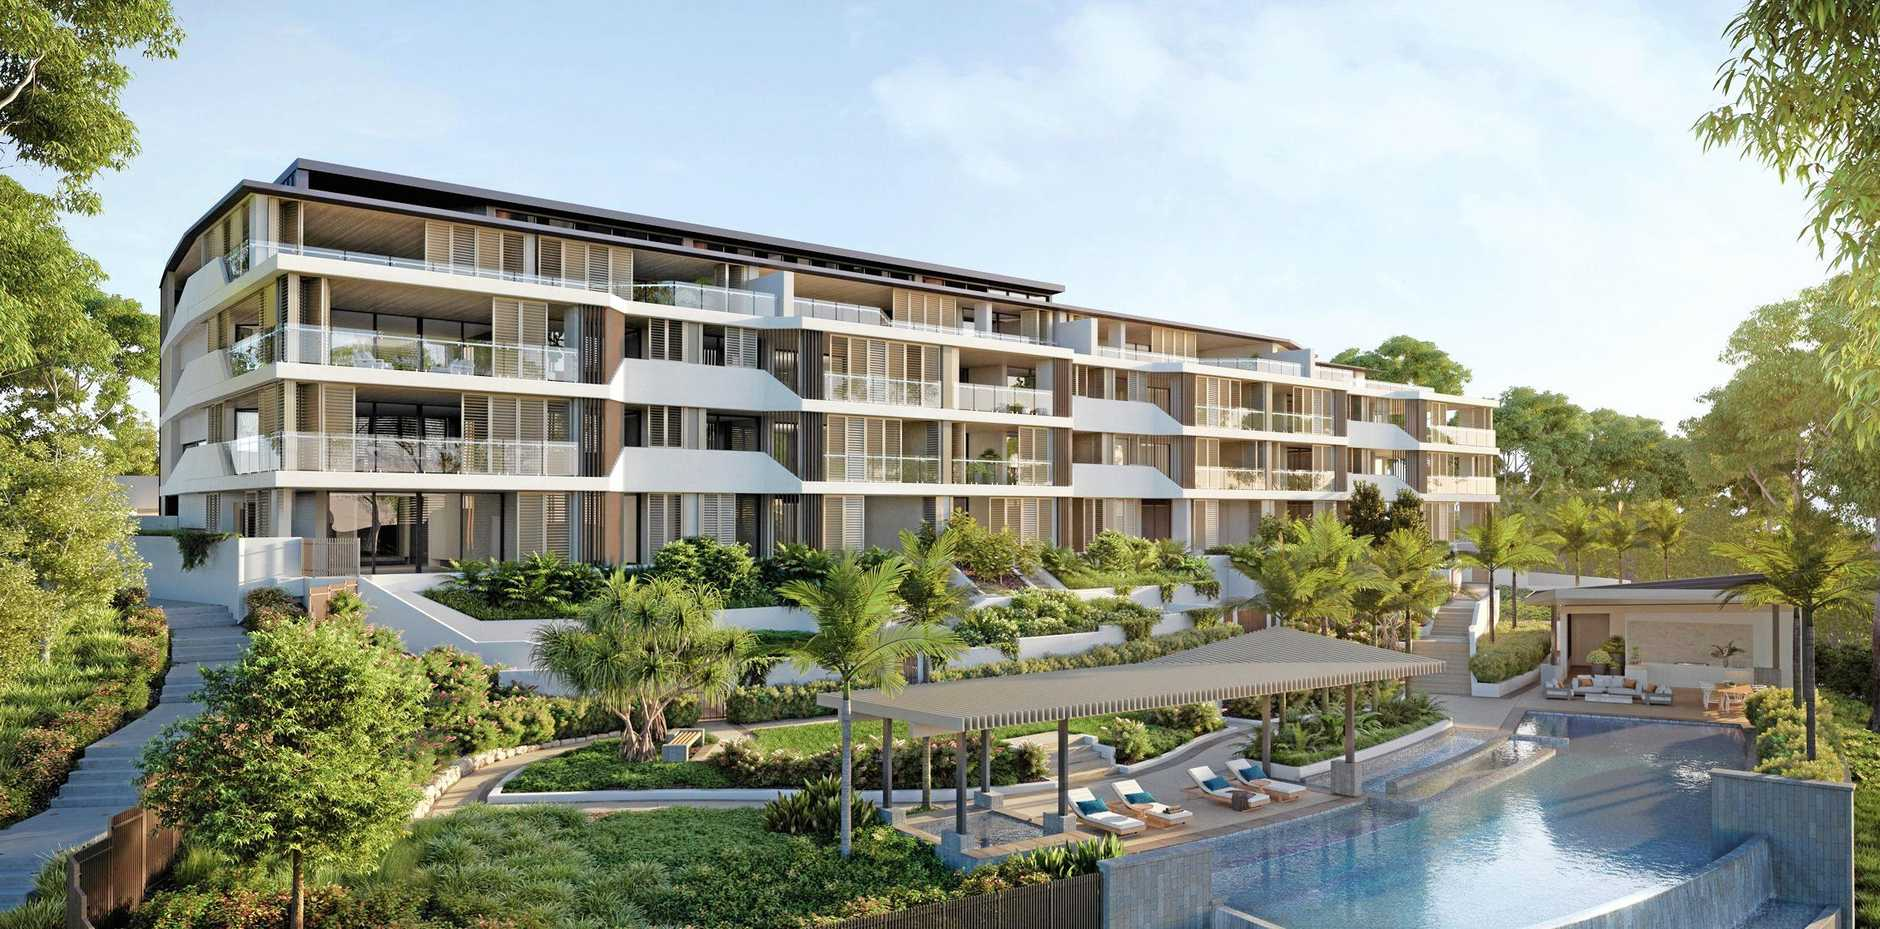 IN DEMAND: Artist impression of Lumina Residences at Settler's Cove.